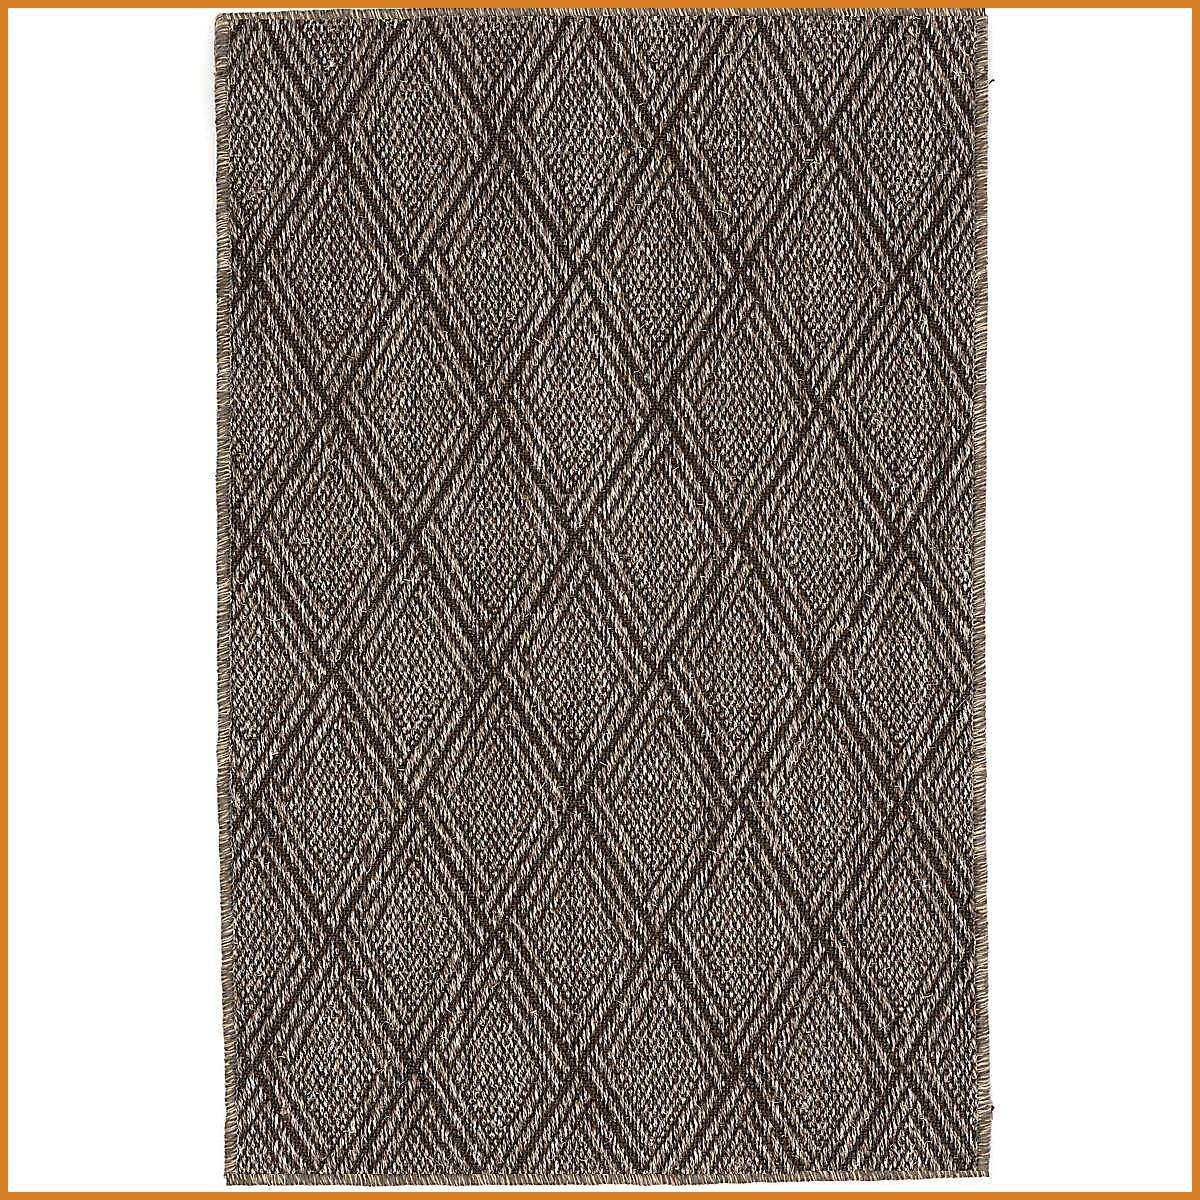 Diamond Greige Sisal Woven Rug  Dash  Albert Constructed from a jutederived fiber this diamondpattern woven sisal rug is an eyecatching extradurable addition to any floor...